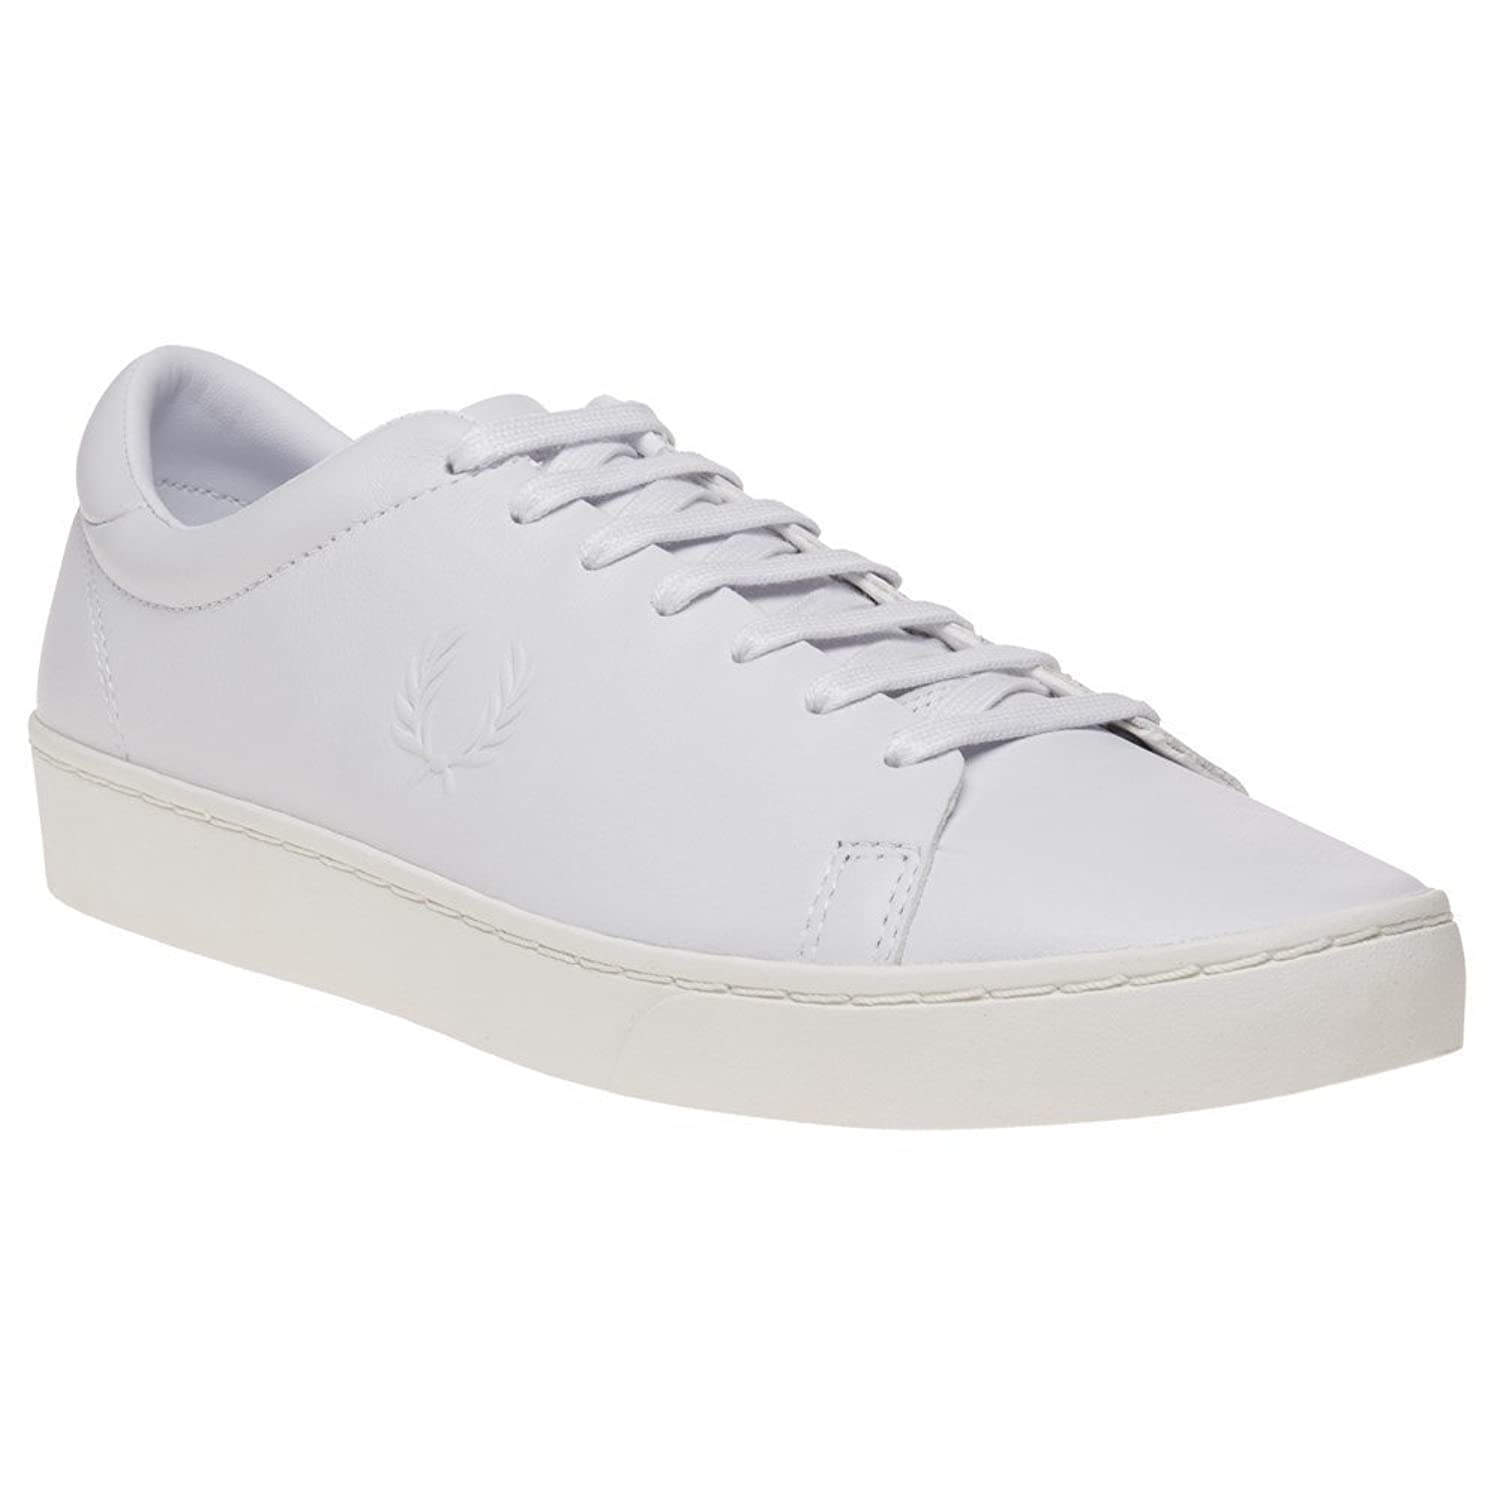 Fred Perry Spencer Premium Leather Herren Sneaker Weiß Weiss